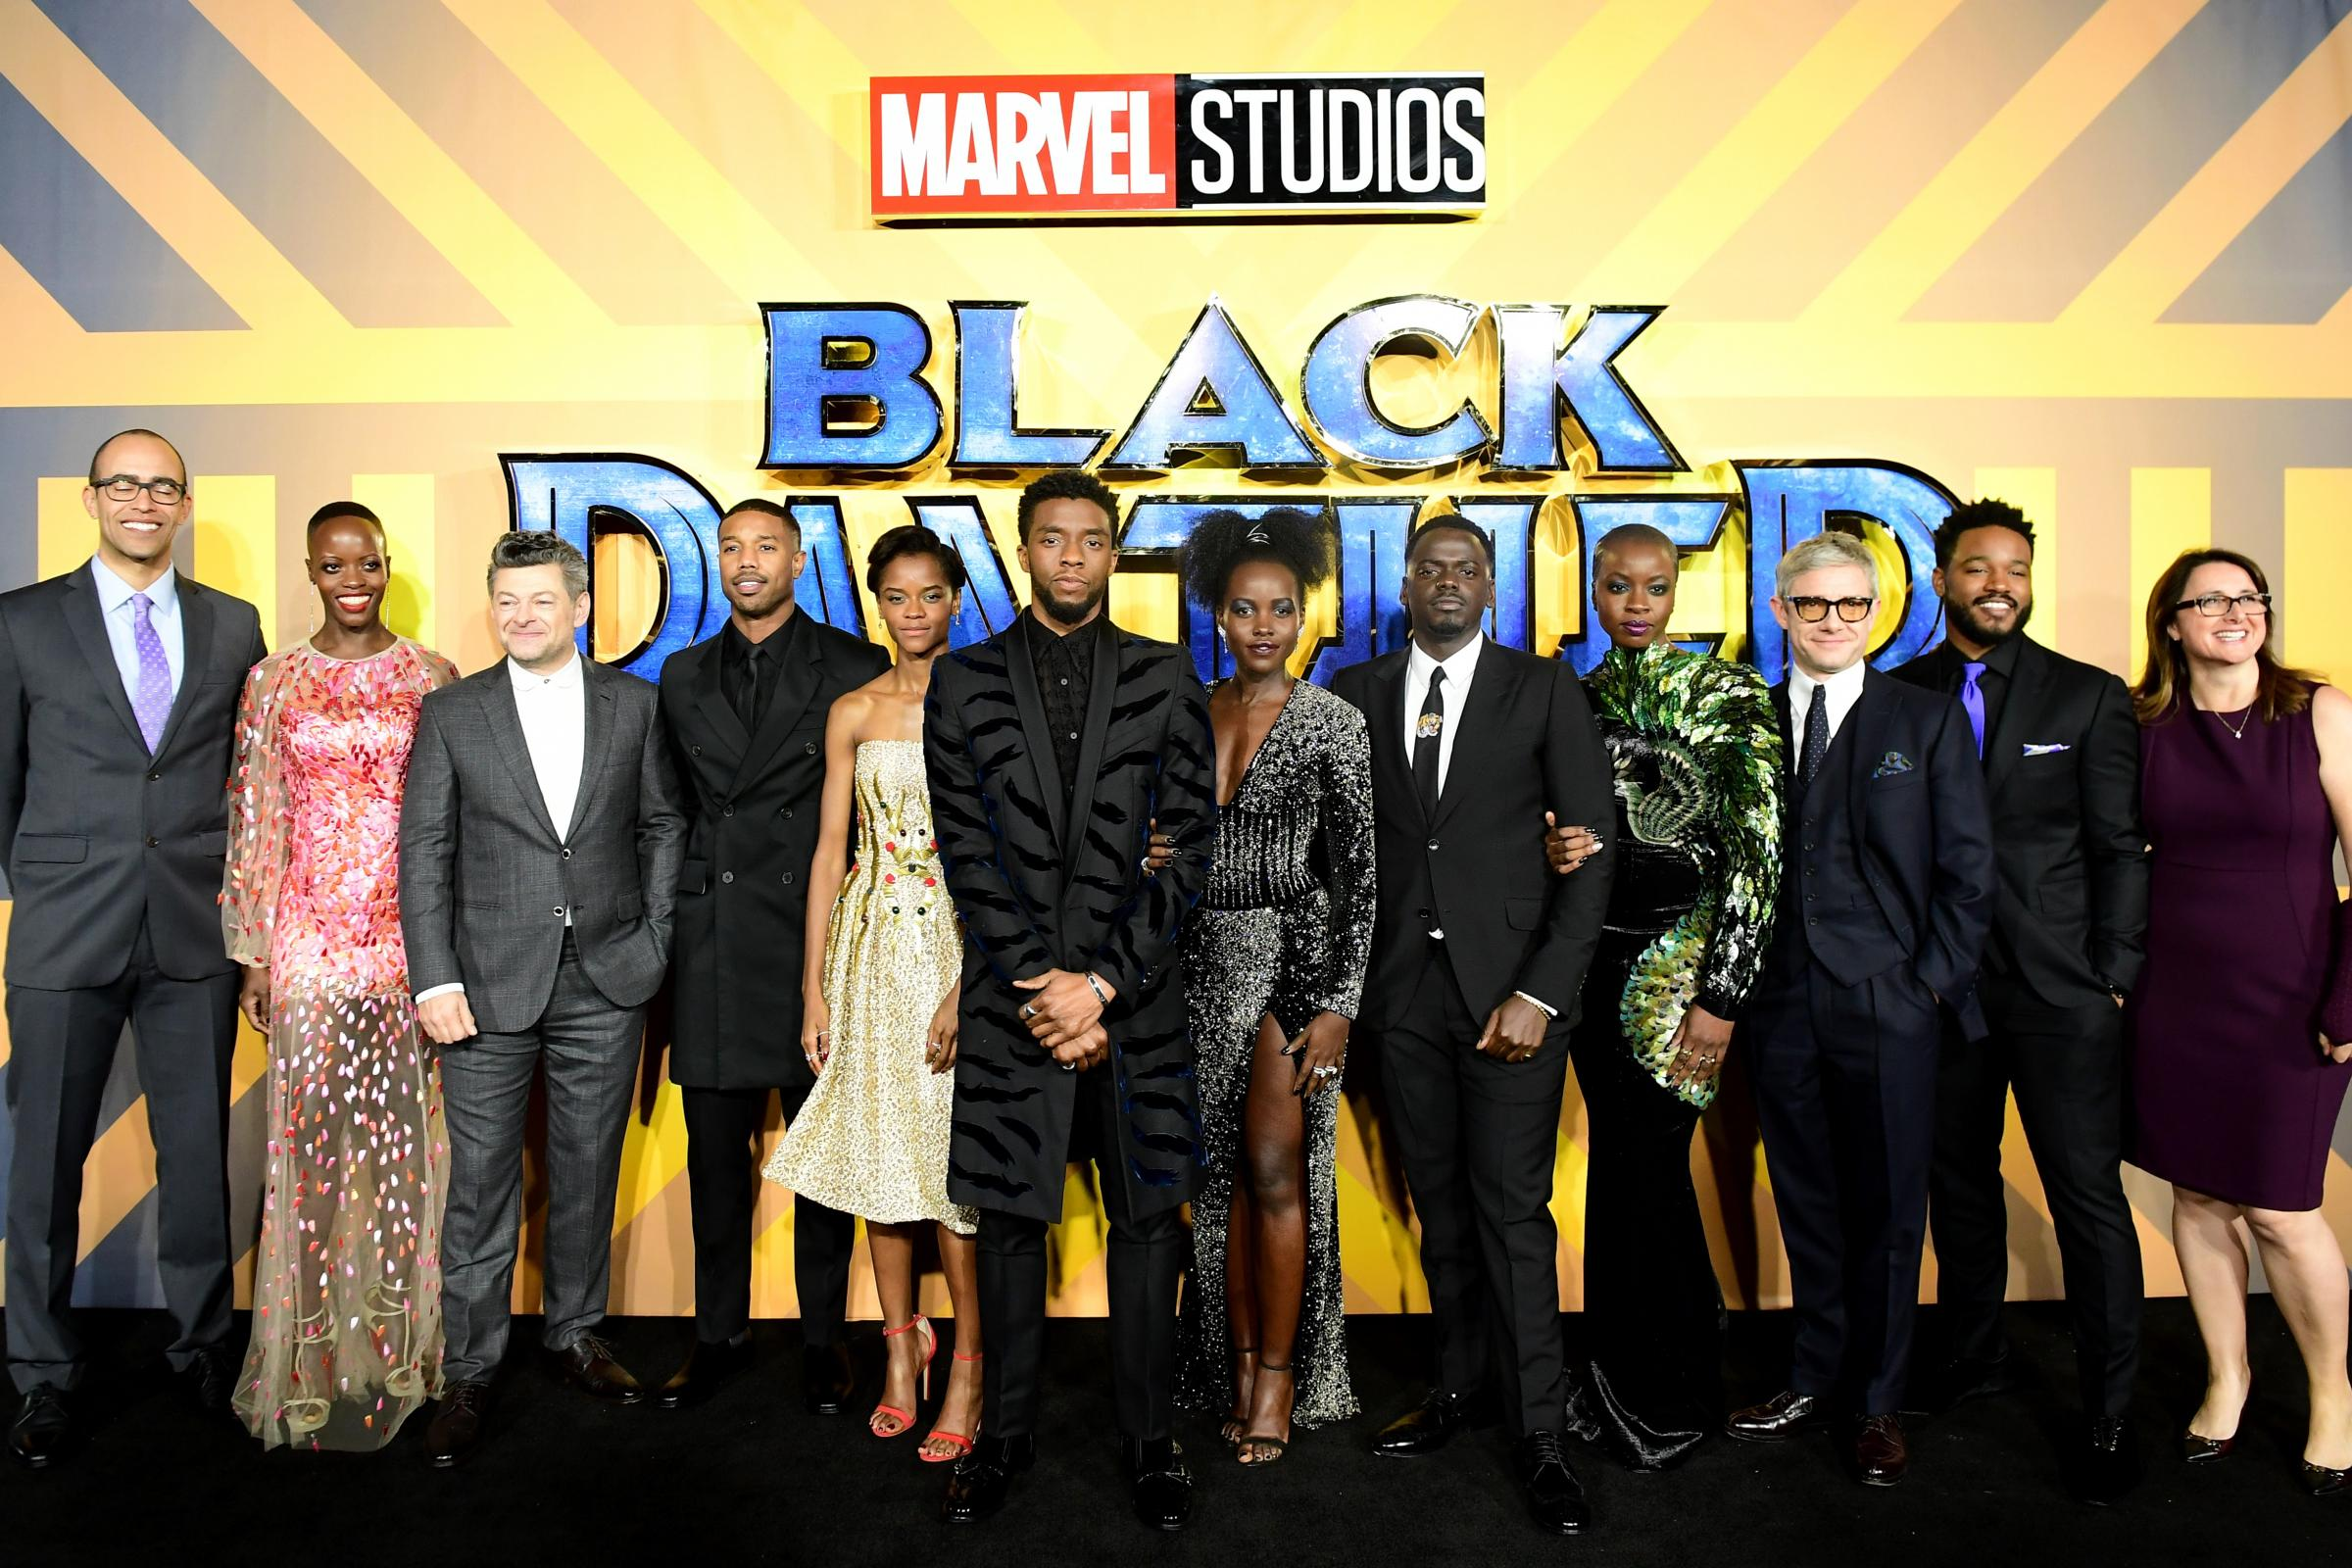 The cast and crew of Black Panther at the film's European premiere in London (Ian West/PA)